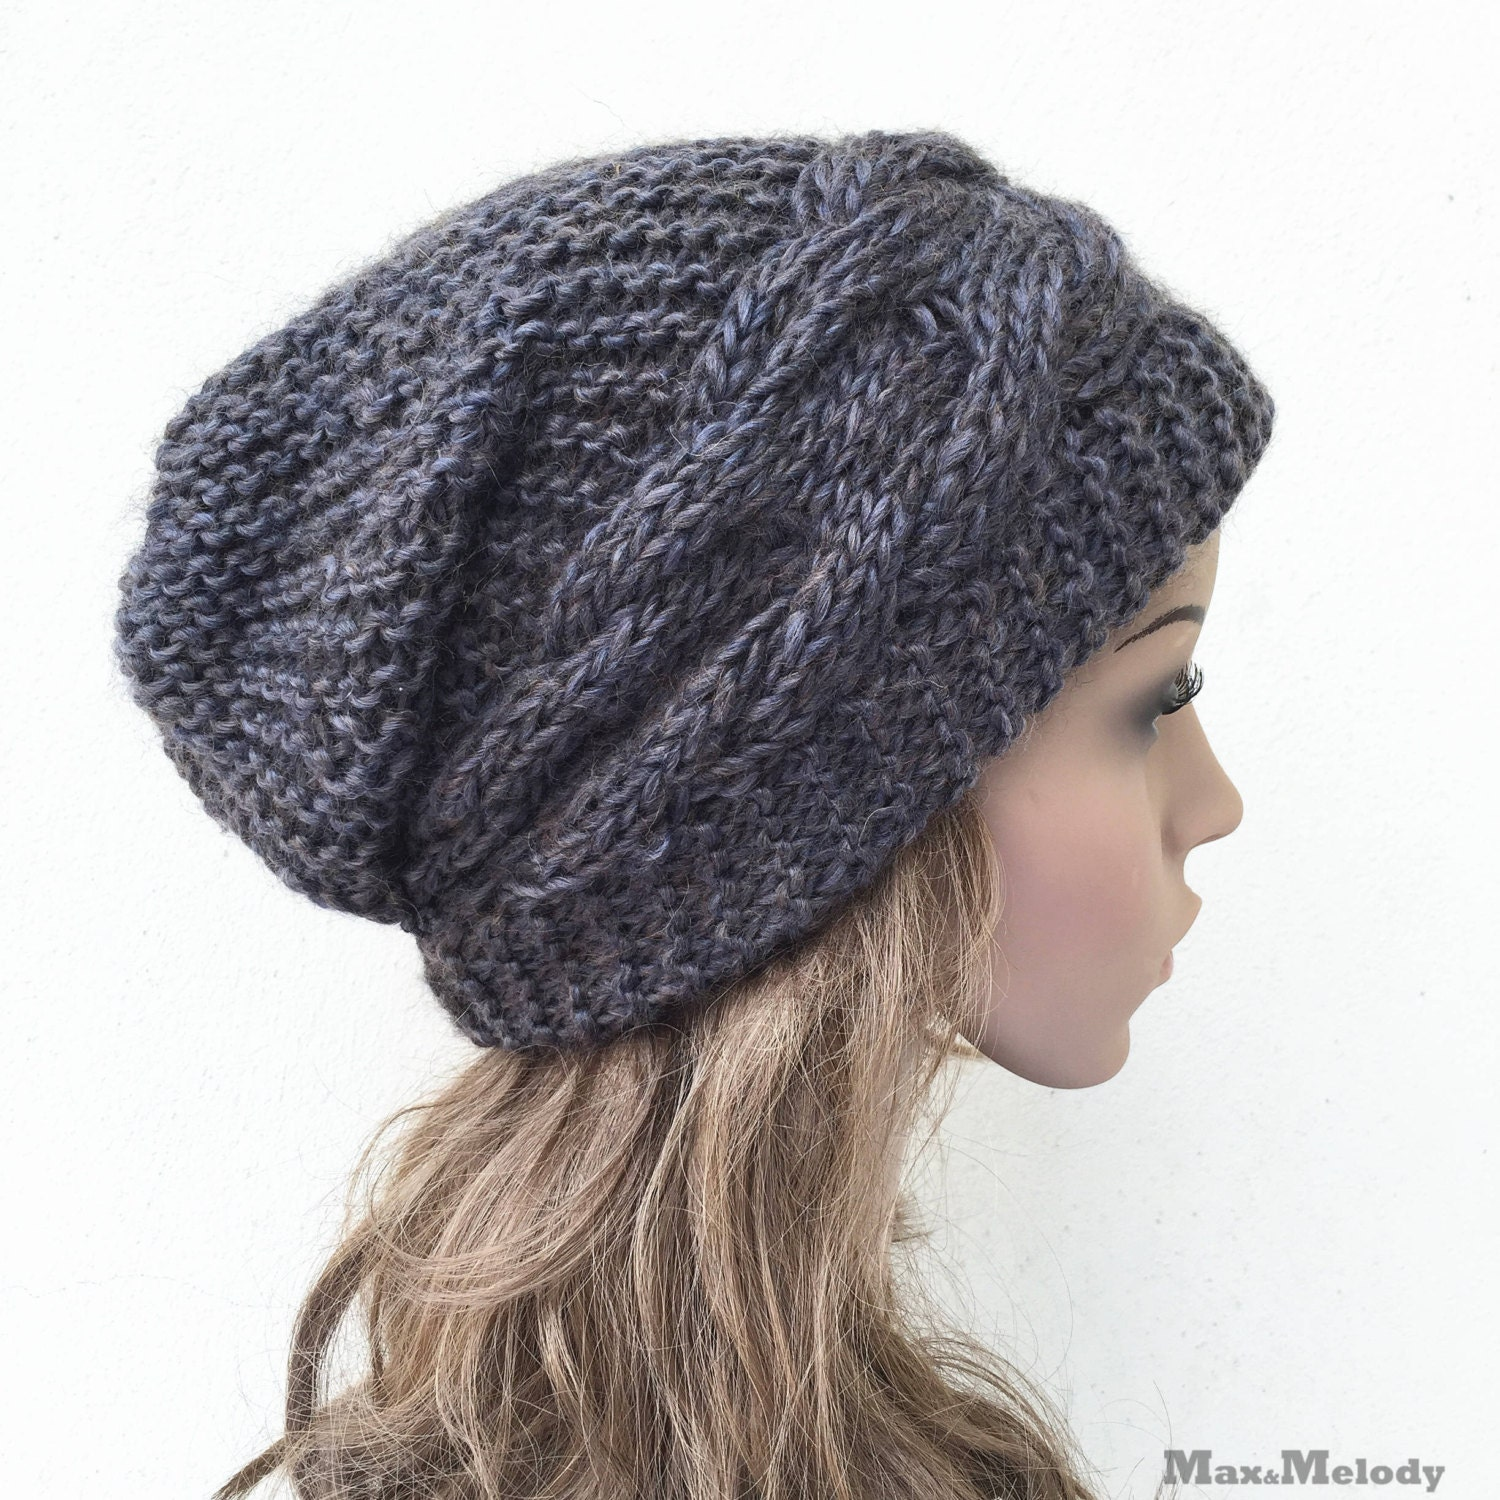 54f0f6d900a Hand knit hat Oversized Chunky Wool Hat slouchy hat dark Olive cable hat -  ready to ship. 1